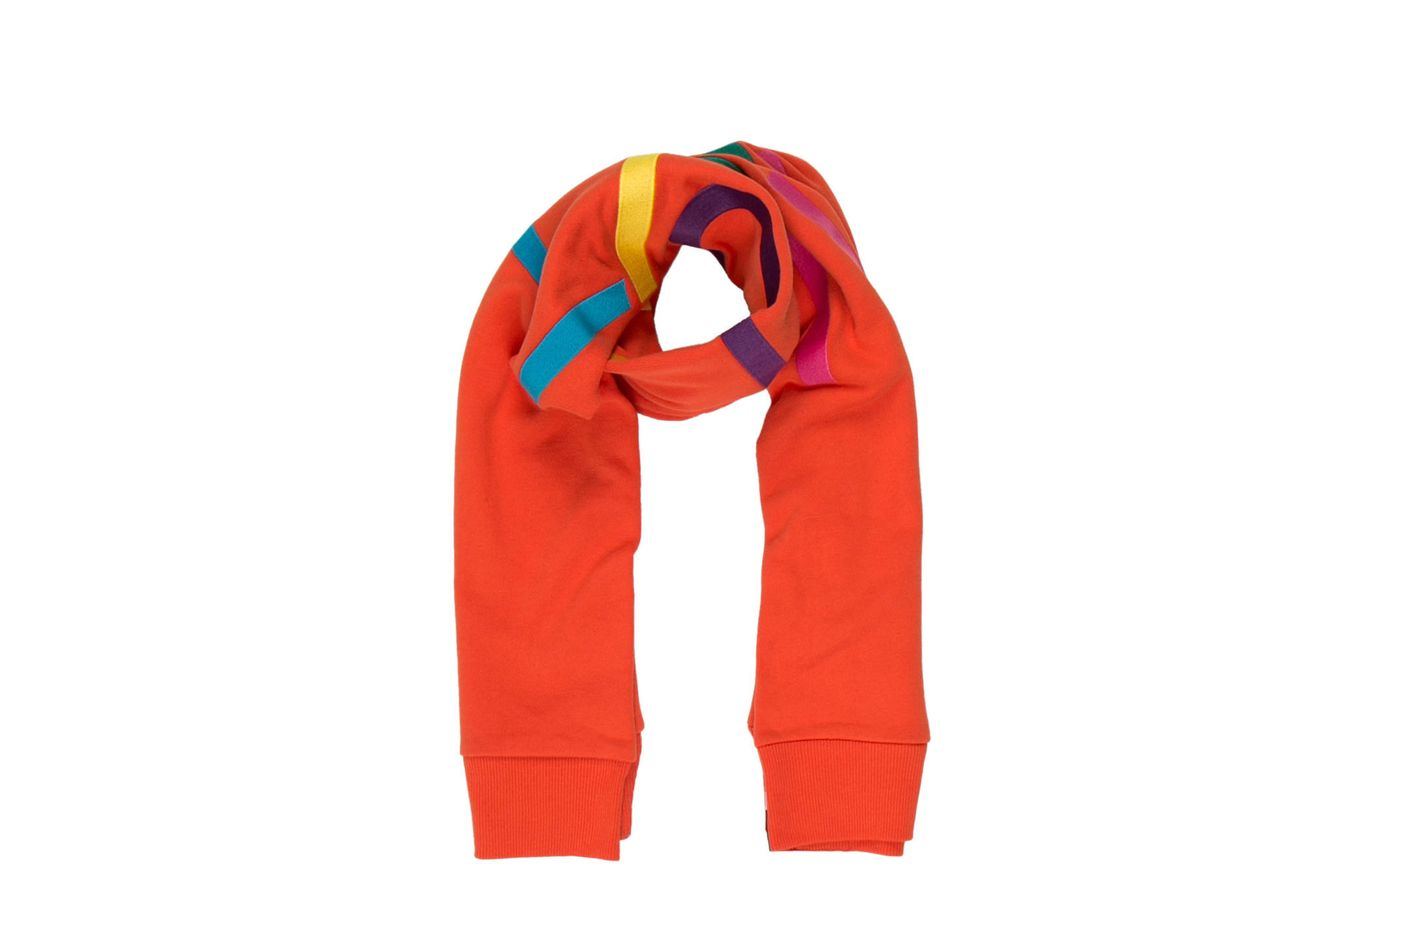 Opening Ceremony x Espirit multicolor patterned scarf